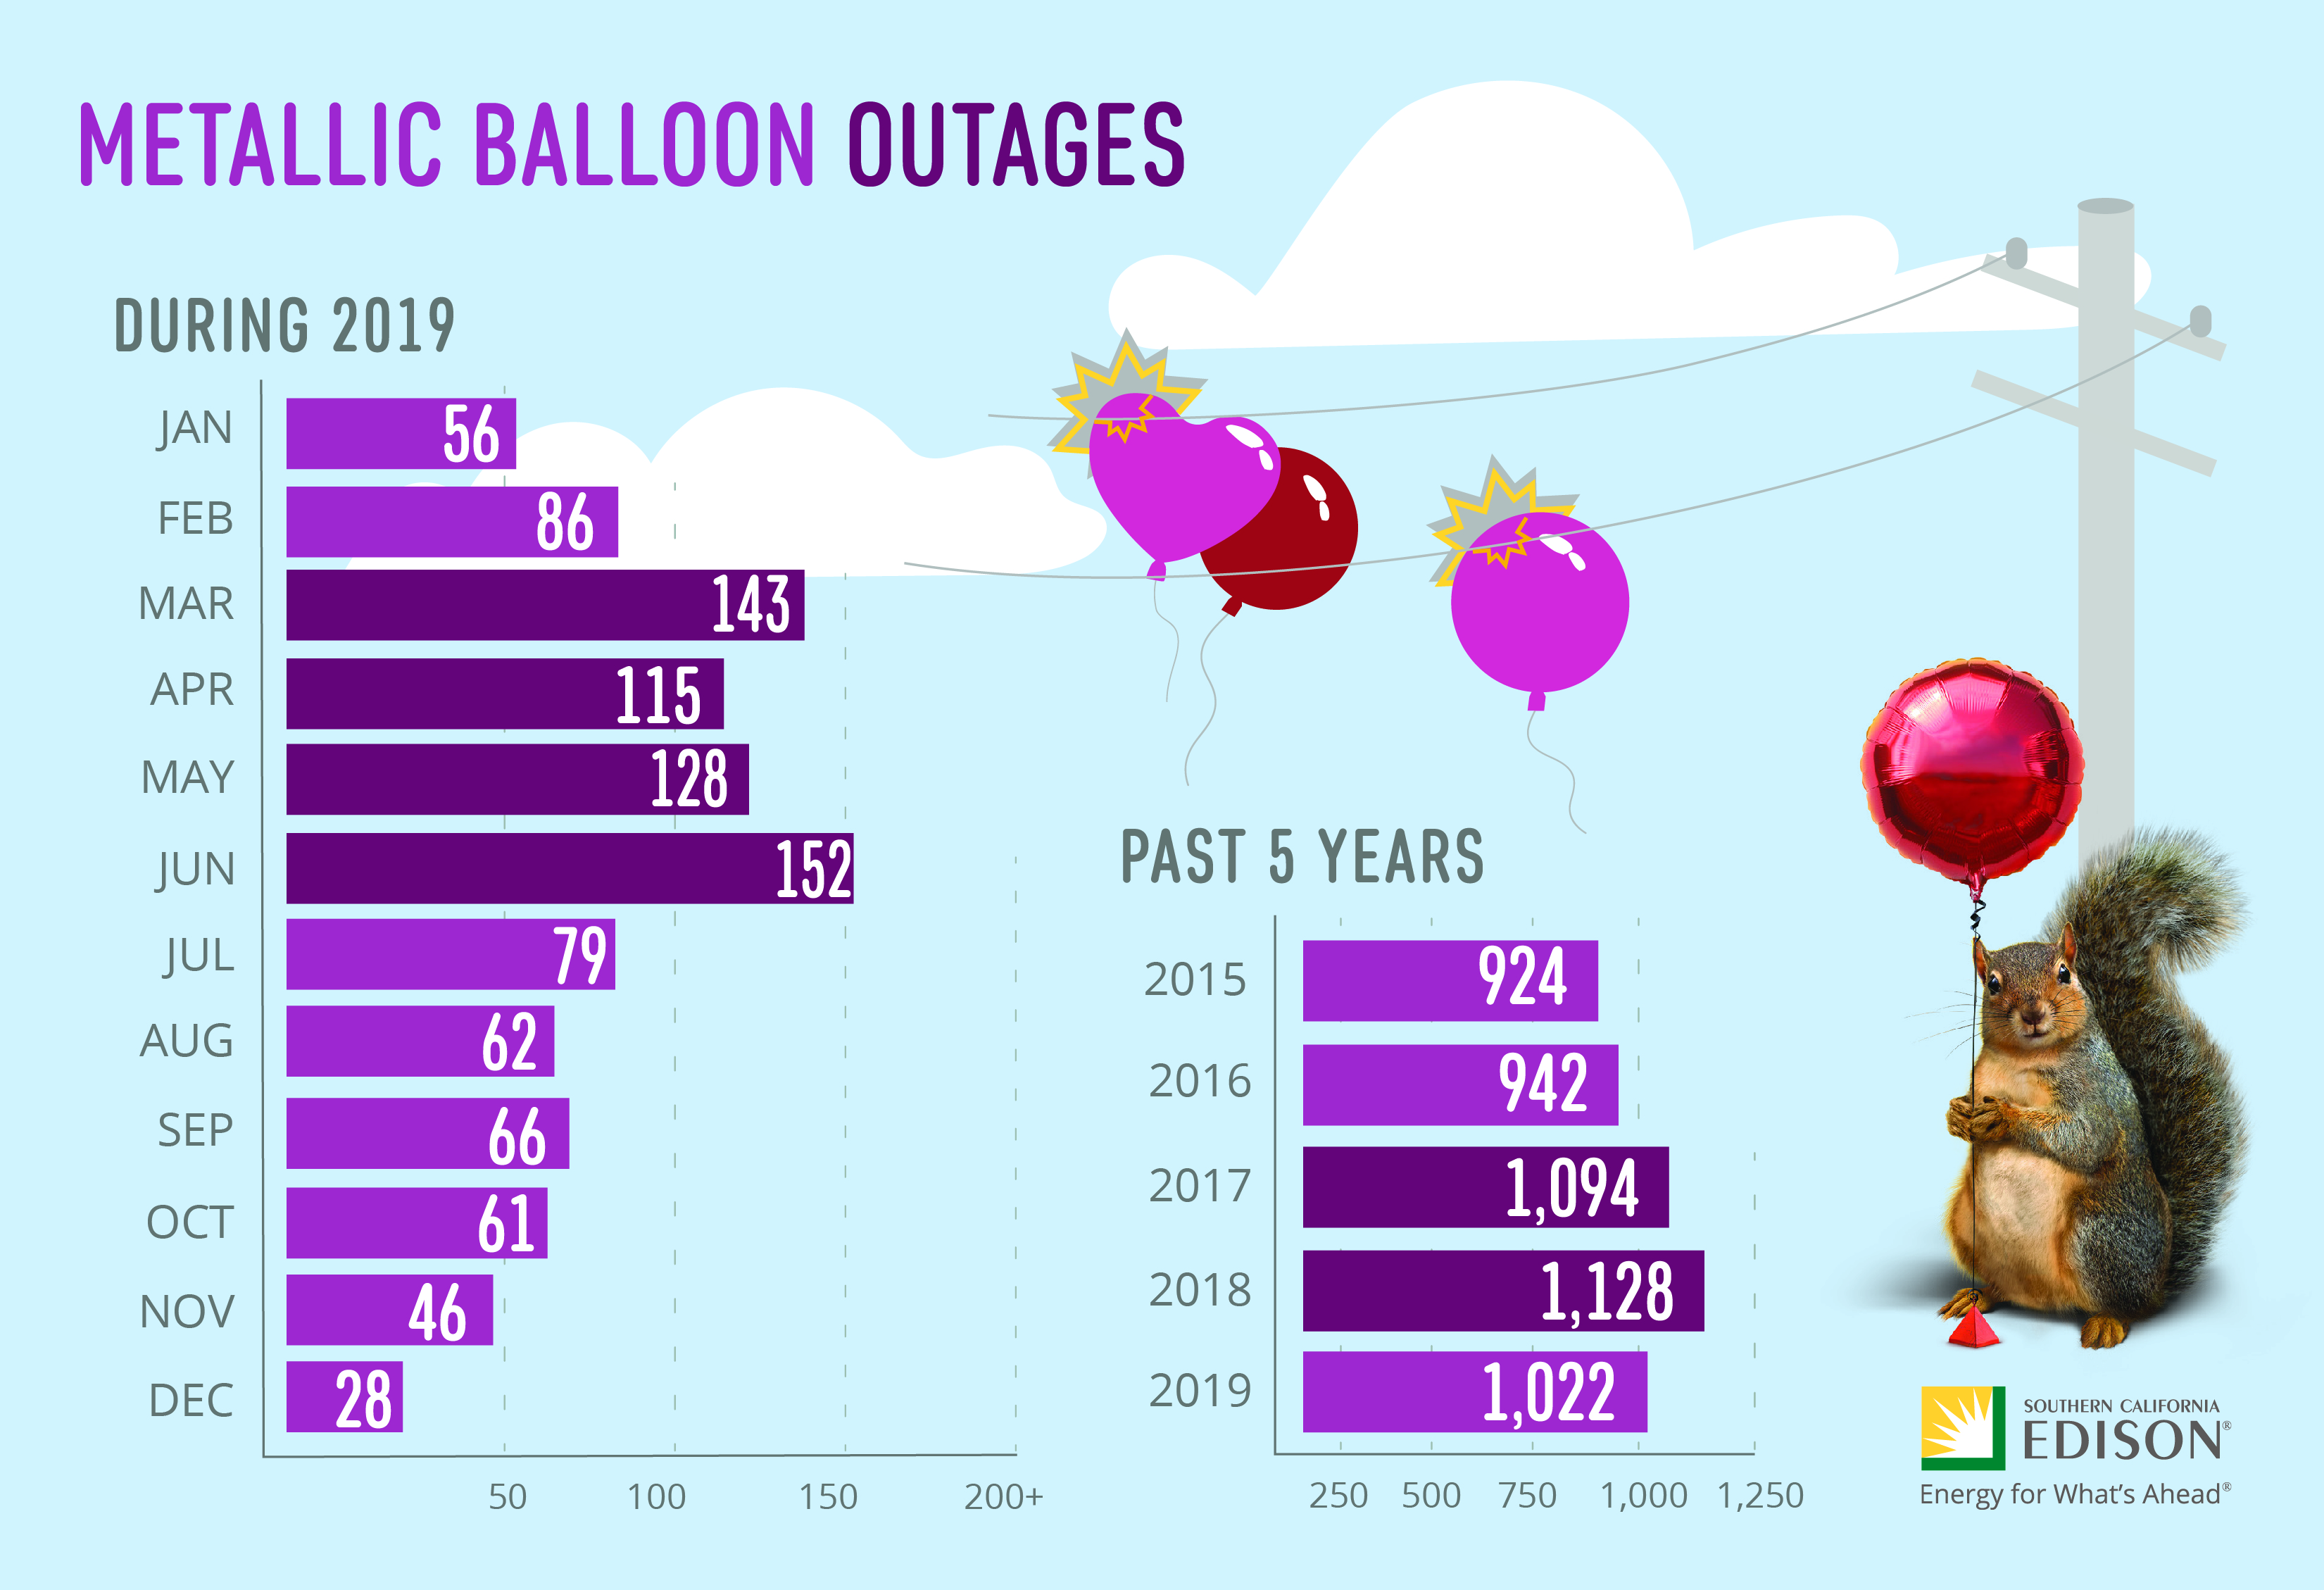 This infographic shows the numbers of metallic balloon outages in 2019 and over the past five years.